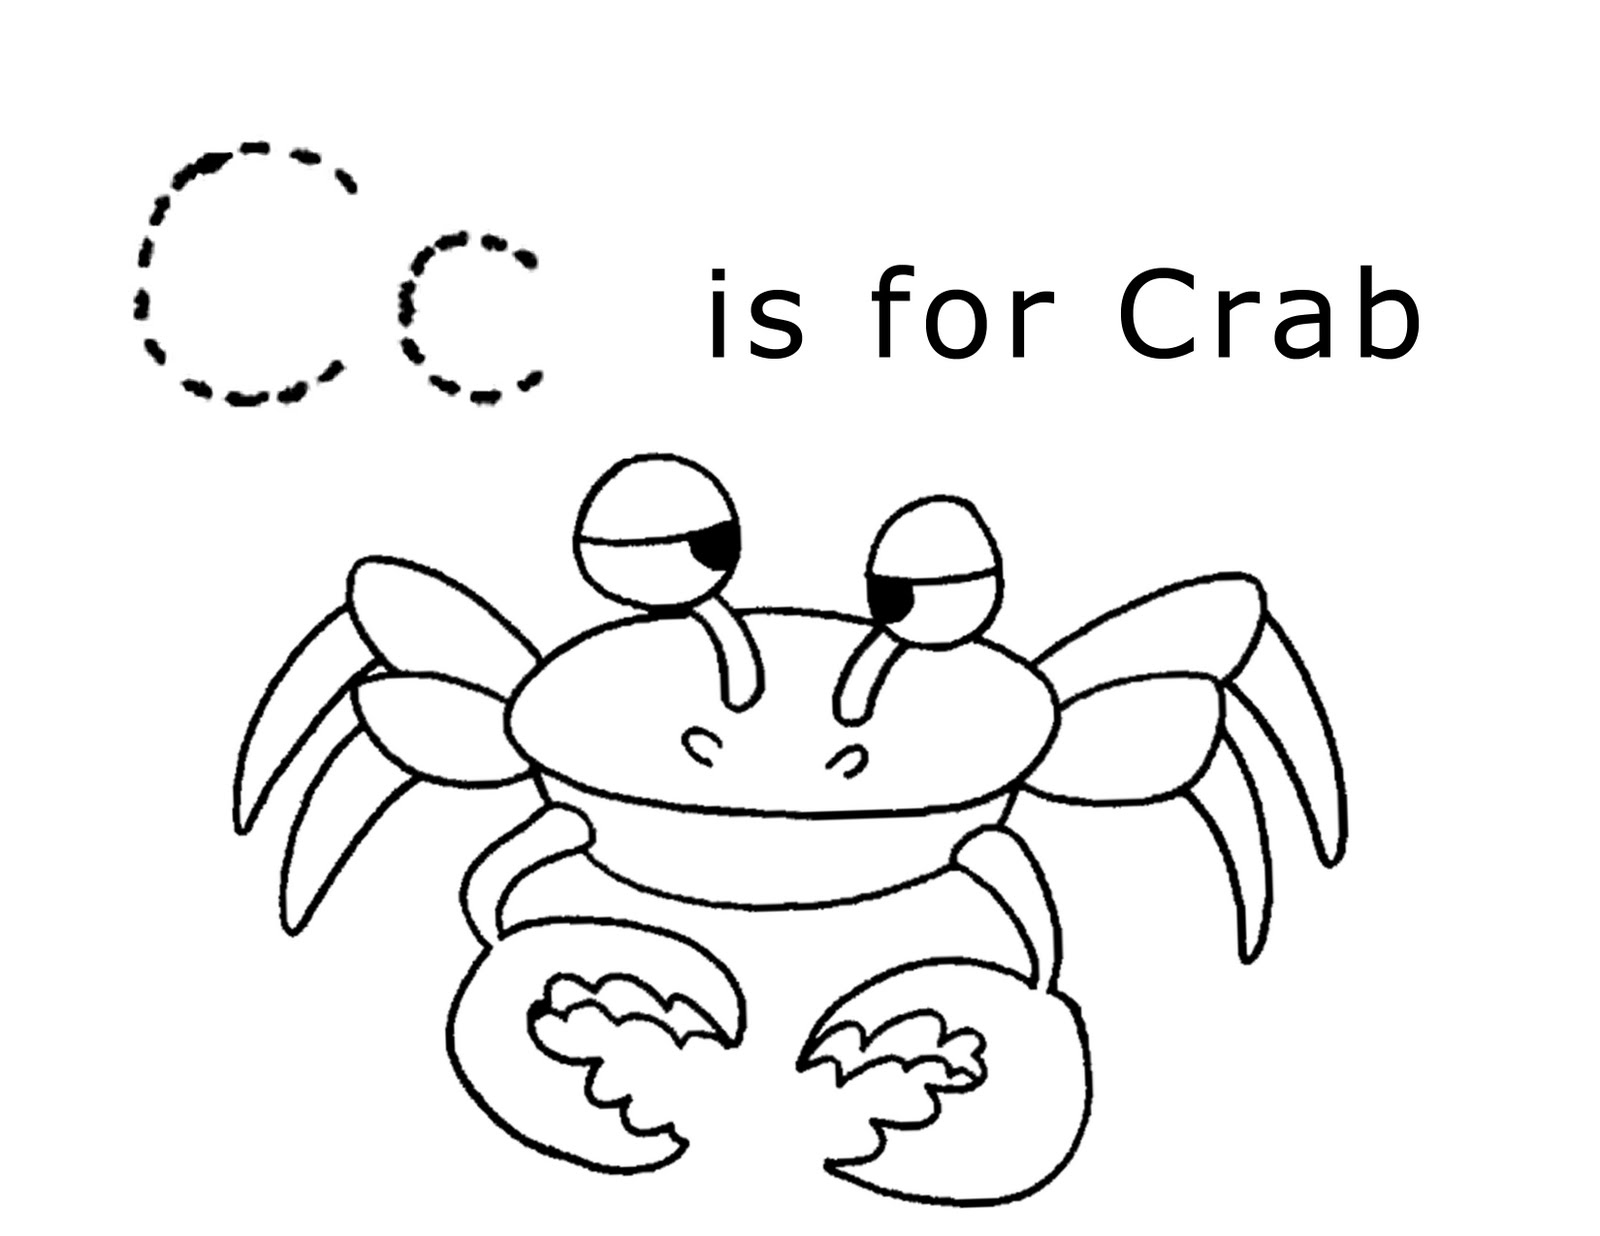 coloring letter c pictures letter c is for camel coloring page free printable letter c pictures coloring